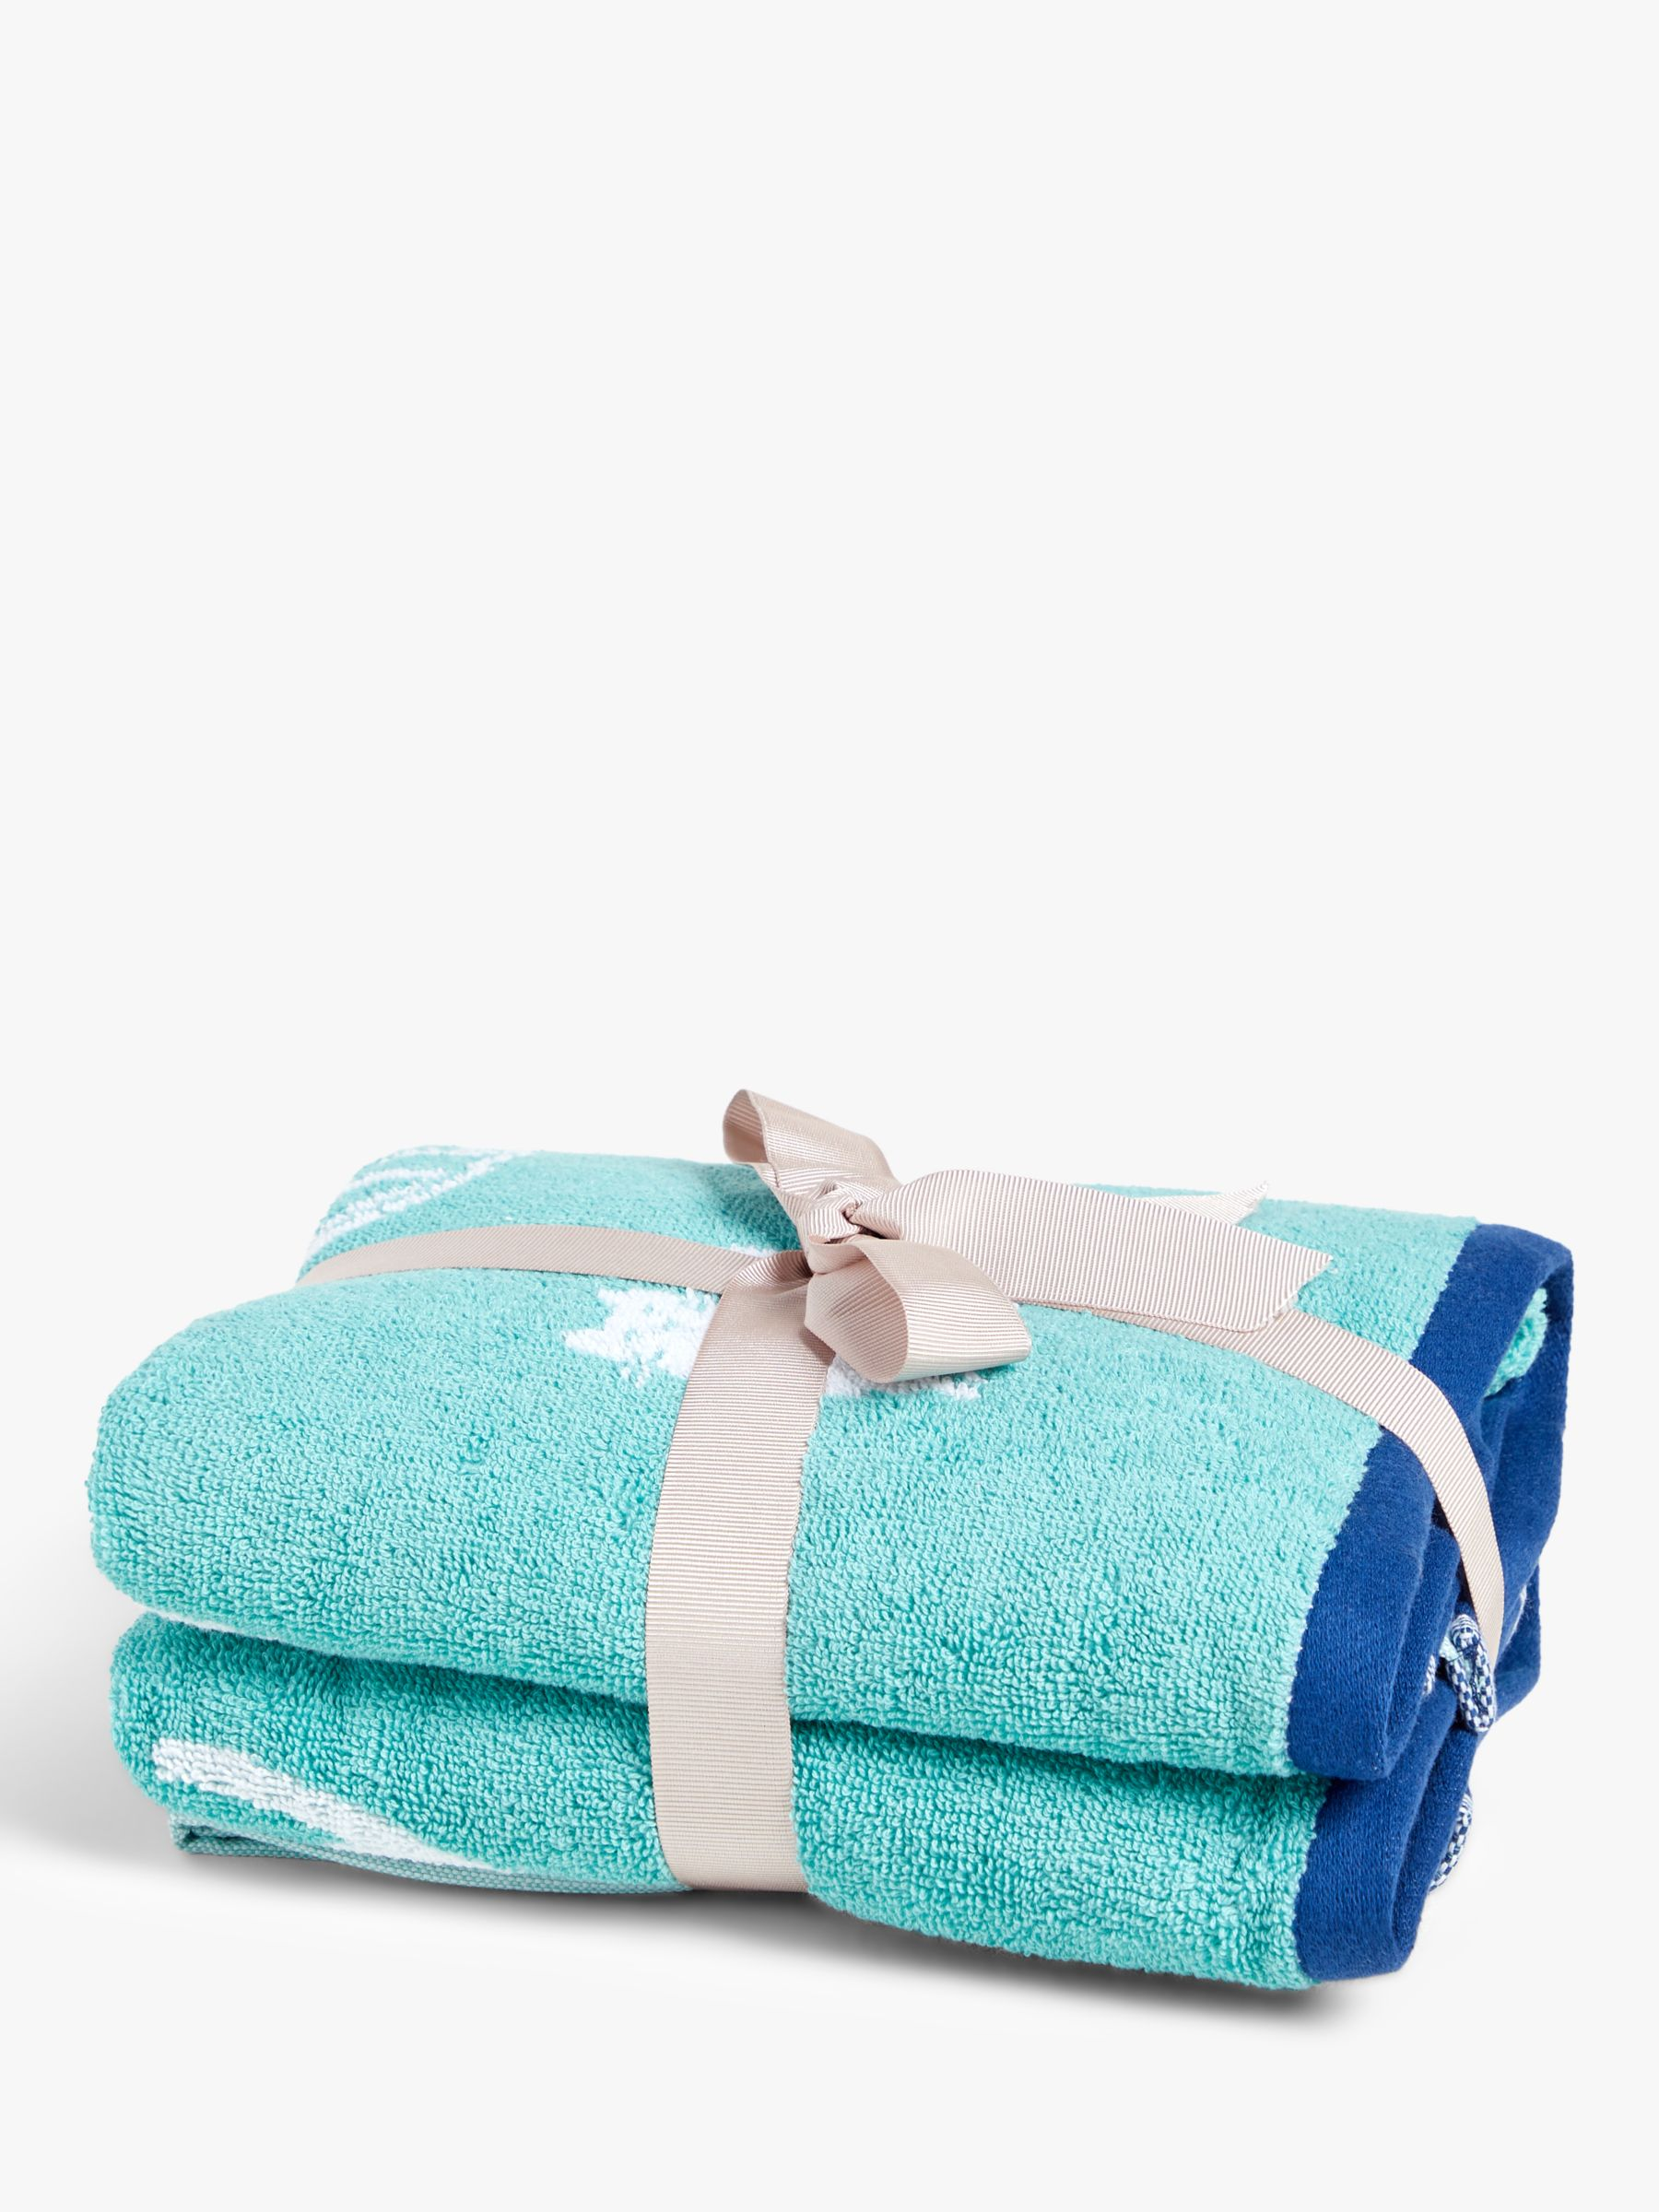 ANYDAY John Lewis & Partners Cats Hand Towels, Pack of 2, Blue